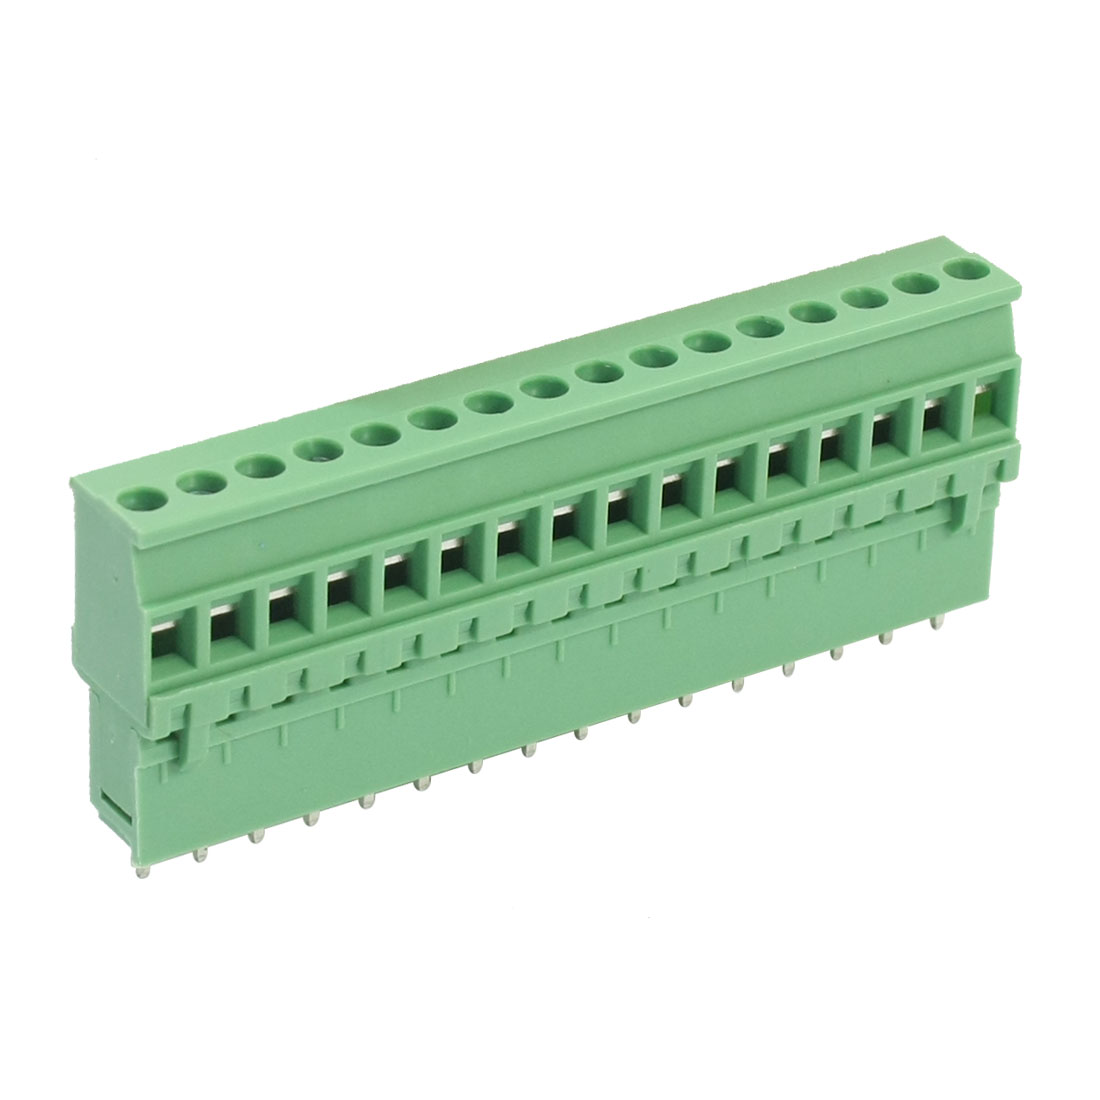 300V 10A 5.08mm Spacing 16-Pin 12-24AWG Pluggable Type PCB Surface Mount Green Plastic PCB Screw Terminal Barrier Block Connector